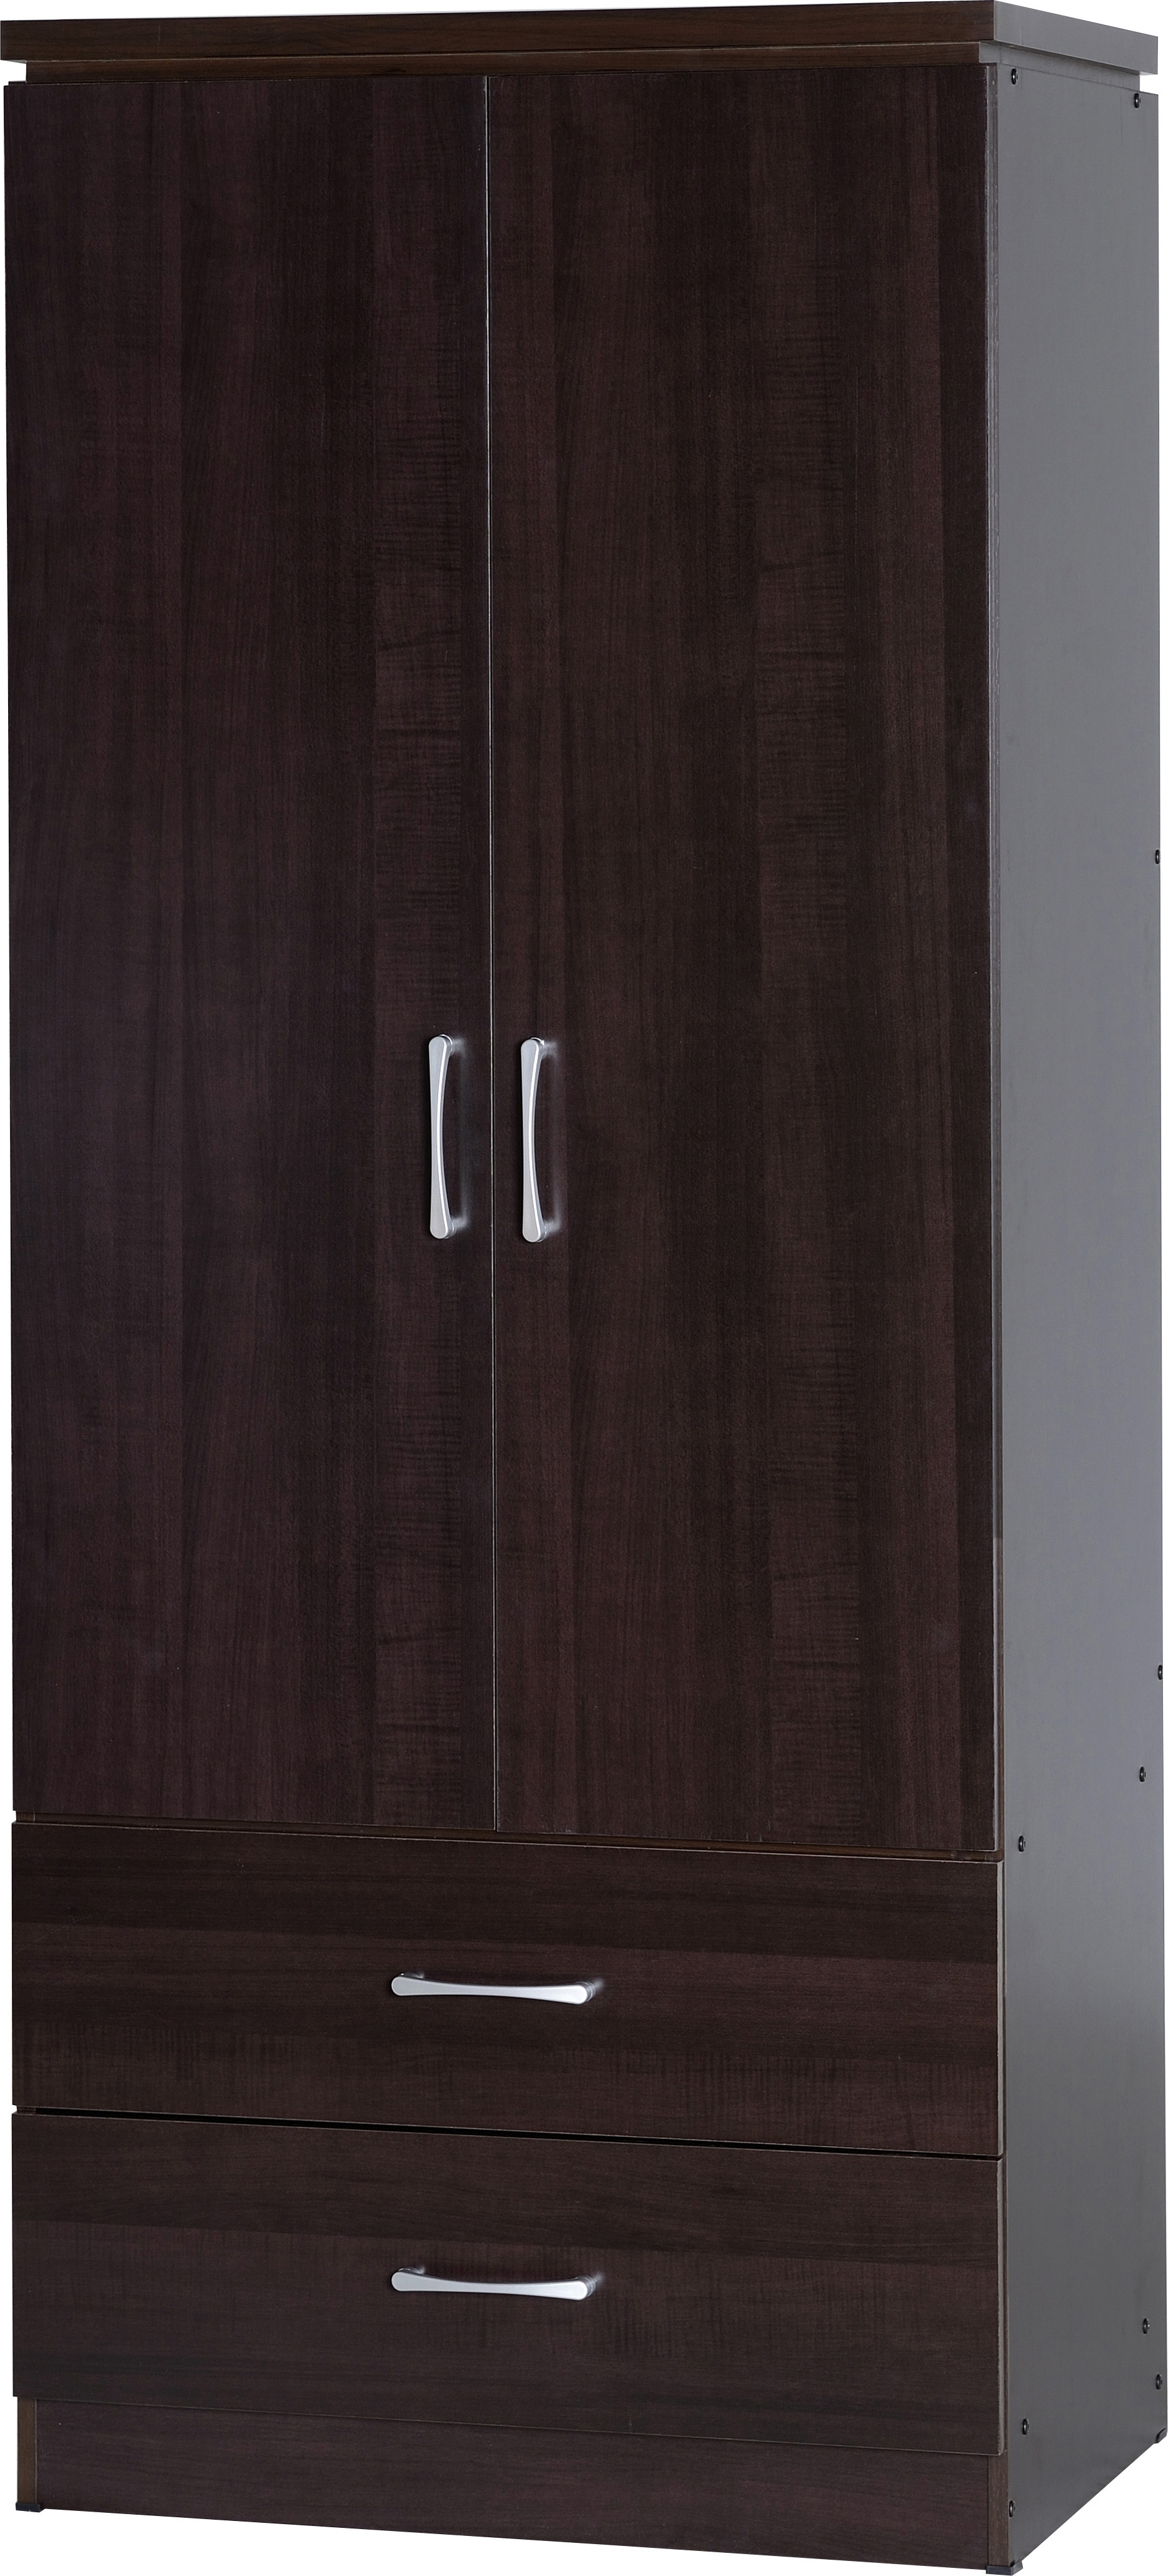 White 2 Door Wardrobes With Drawers For Well Liked Seconique Plc Product Info (View 9 of 15)